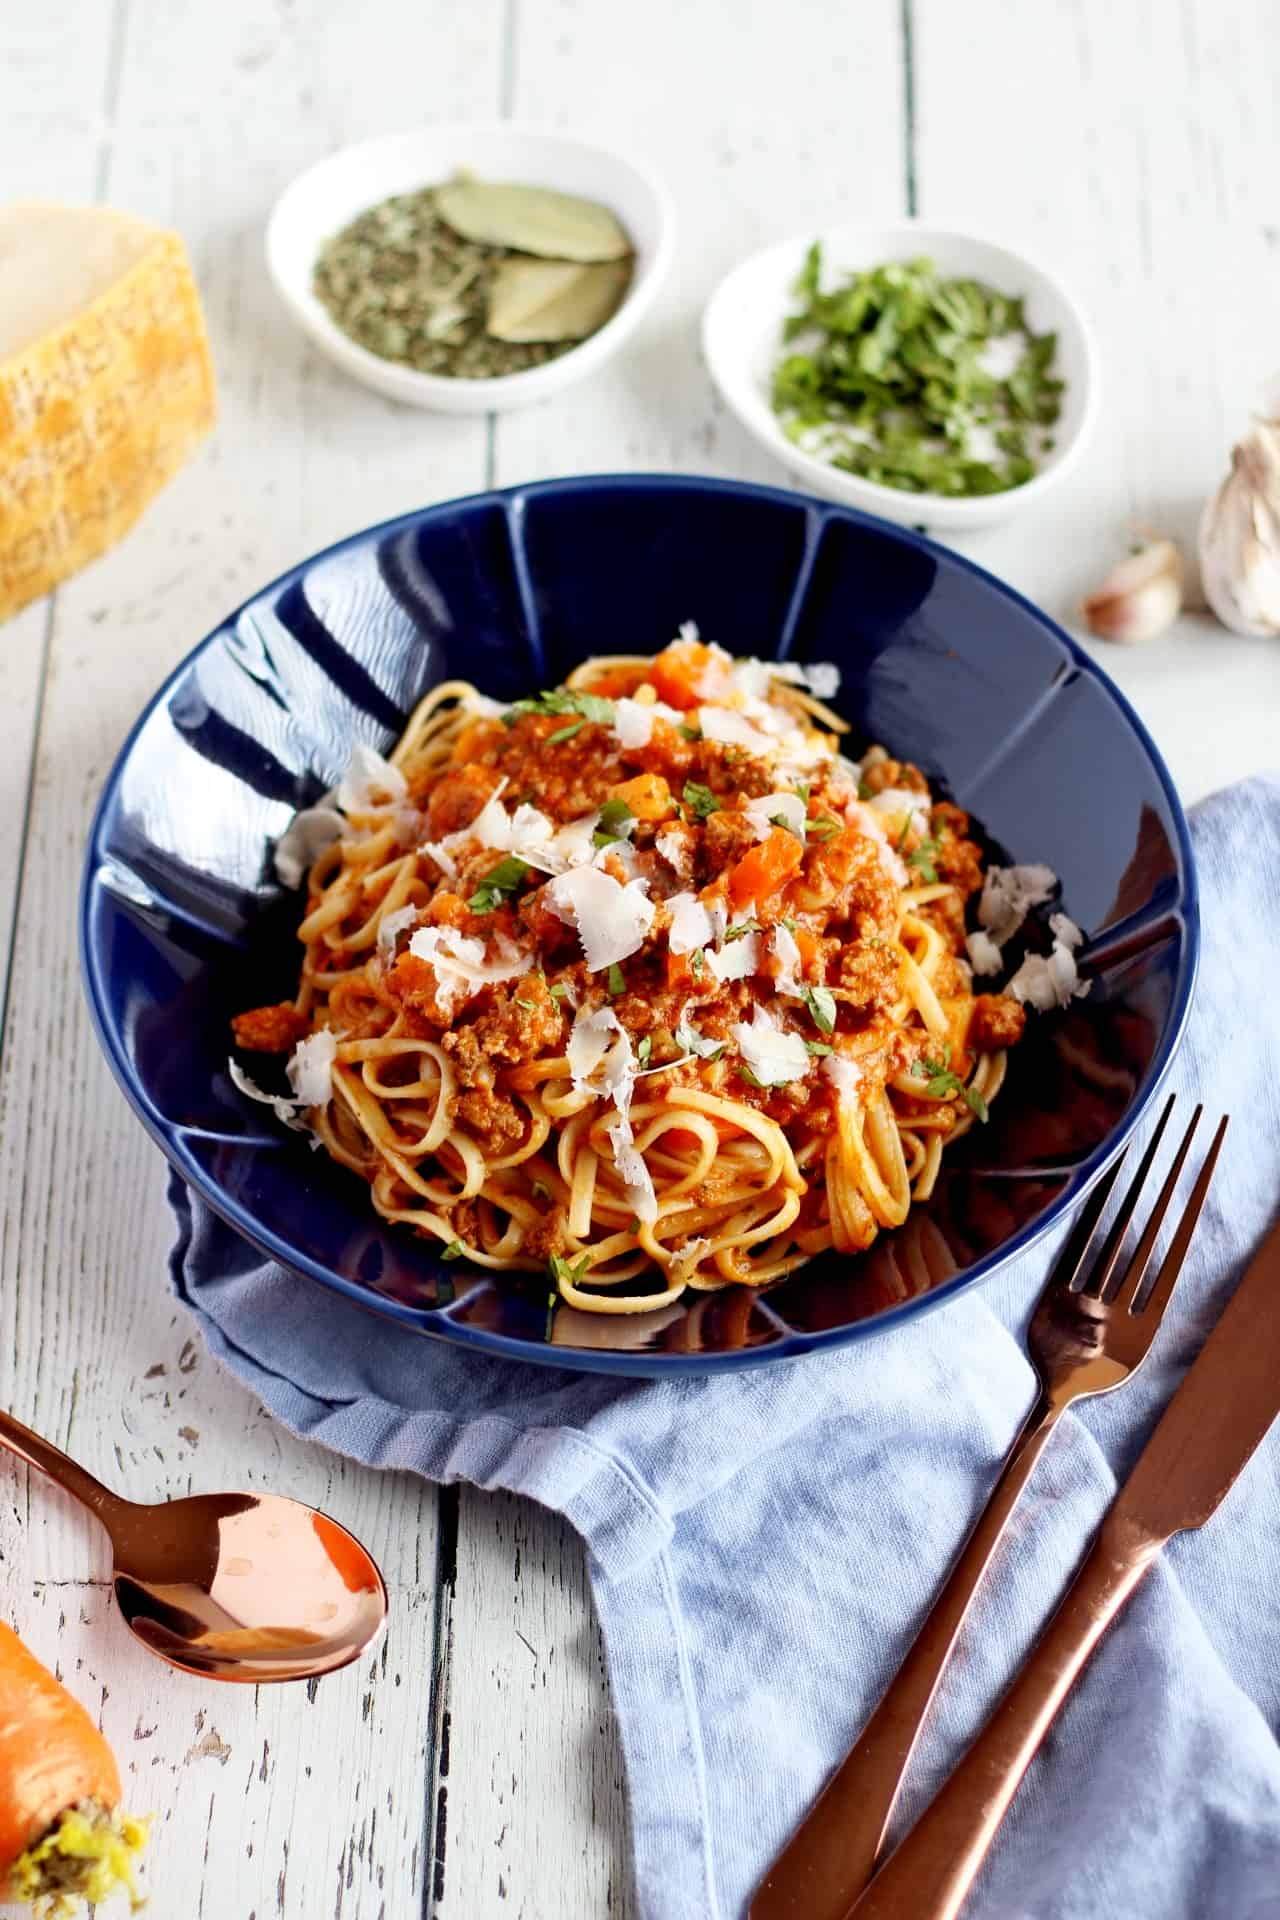 bolognese sauce in blue plate